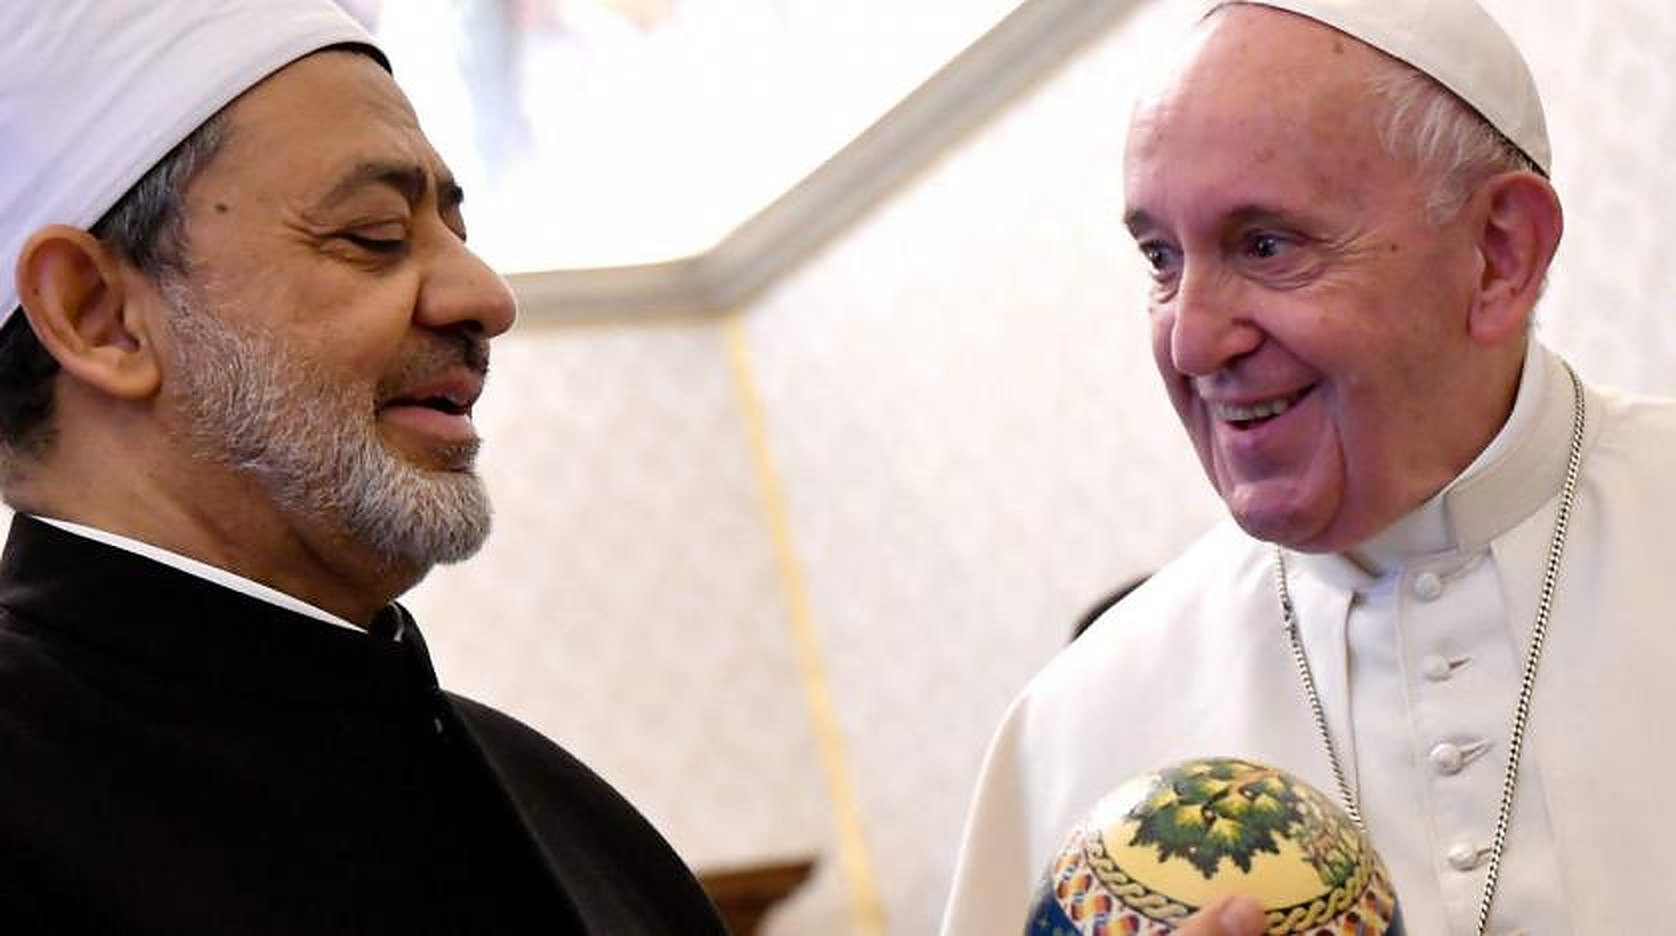 Pope Francis Receives Al Azhar's Grand Imam in the Vatican to Achieve 'Coexistence'